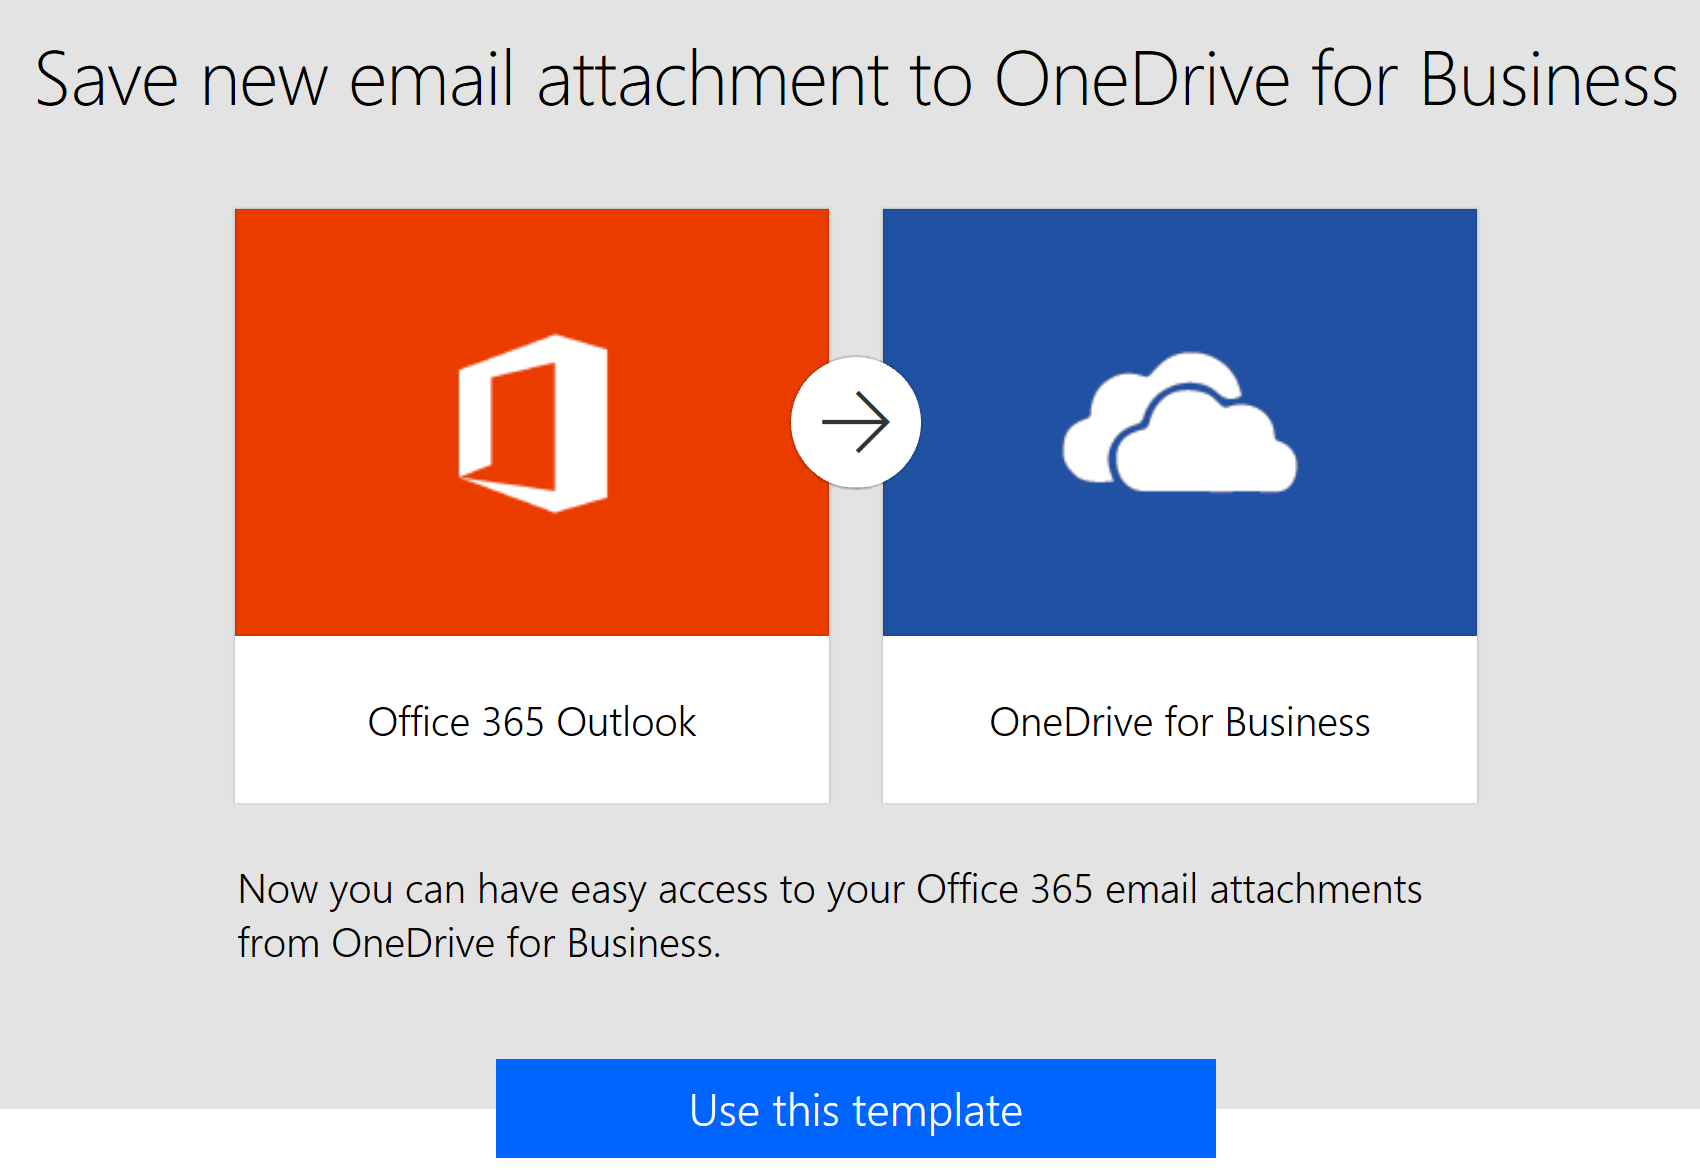 Day 253 – Flow: Save new email attachment to OneDrive for